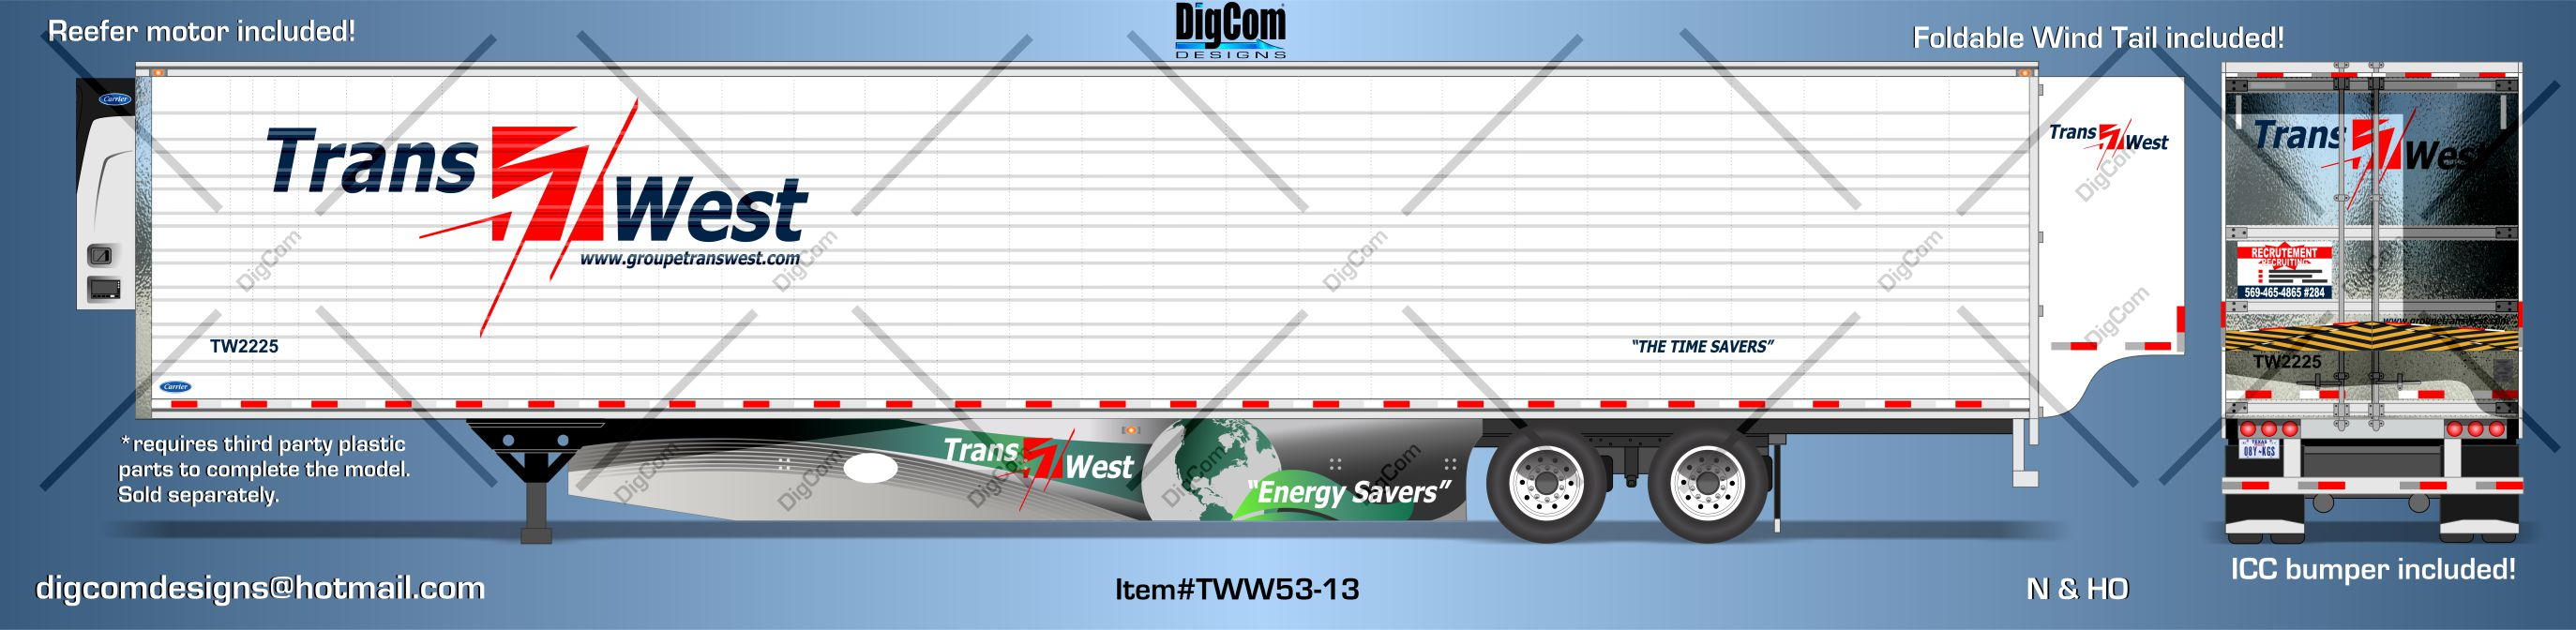 TRANSWEST WHITE TRAILER DESIGN.jpg